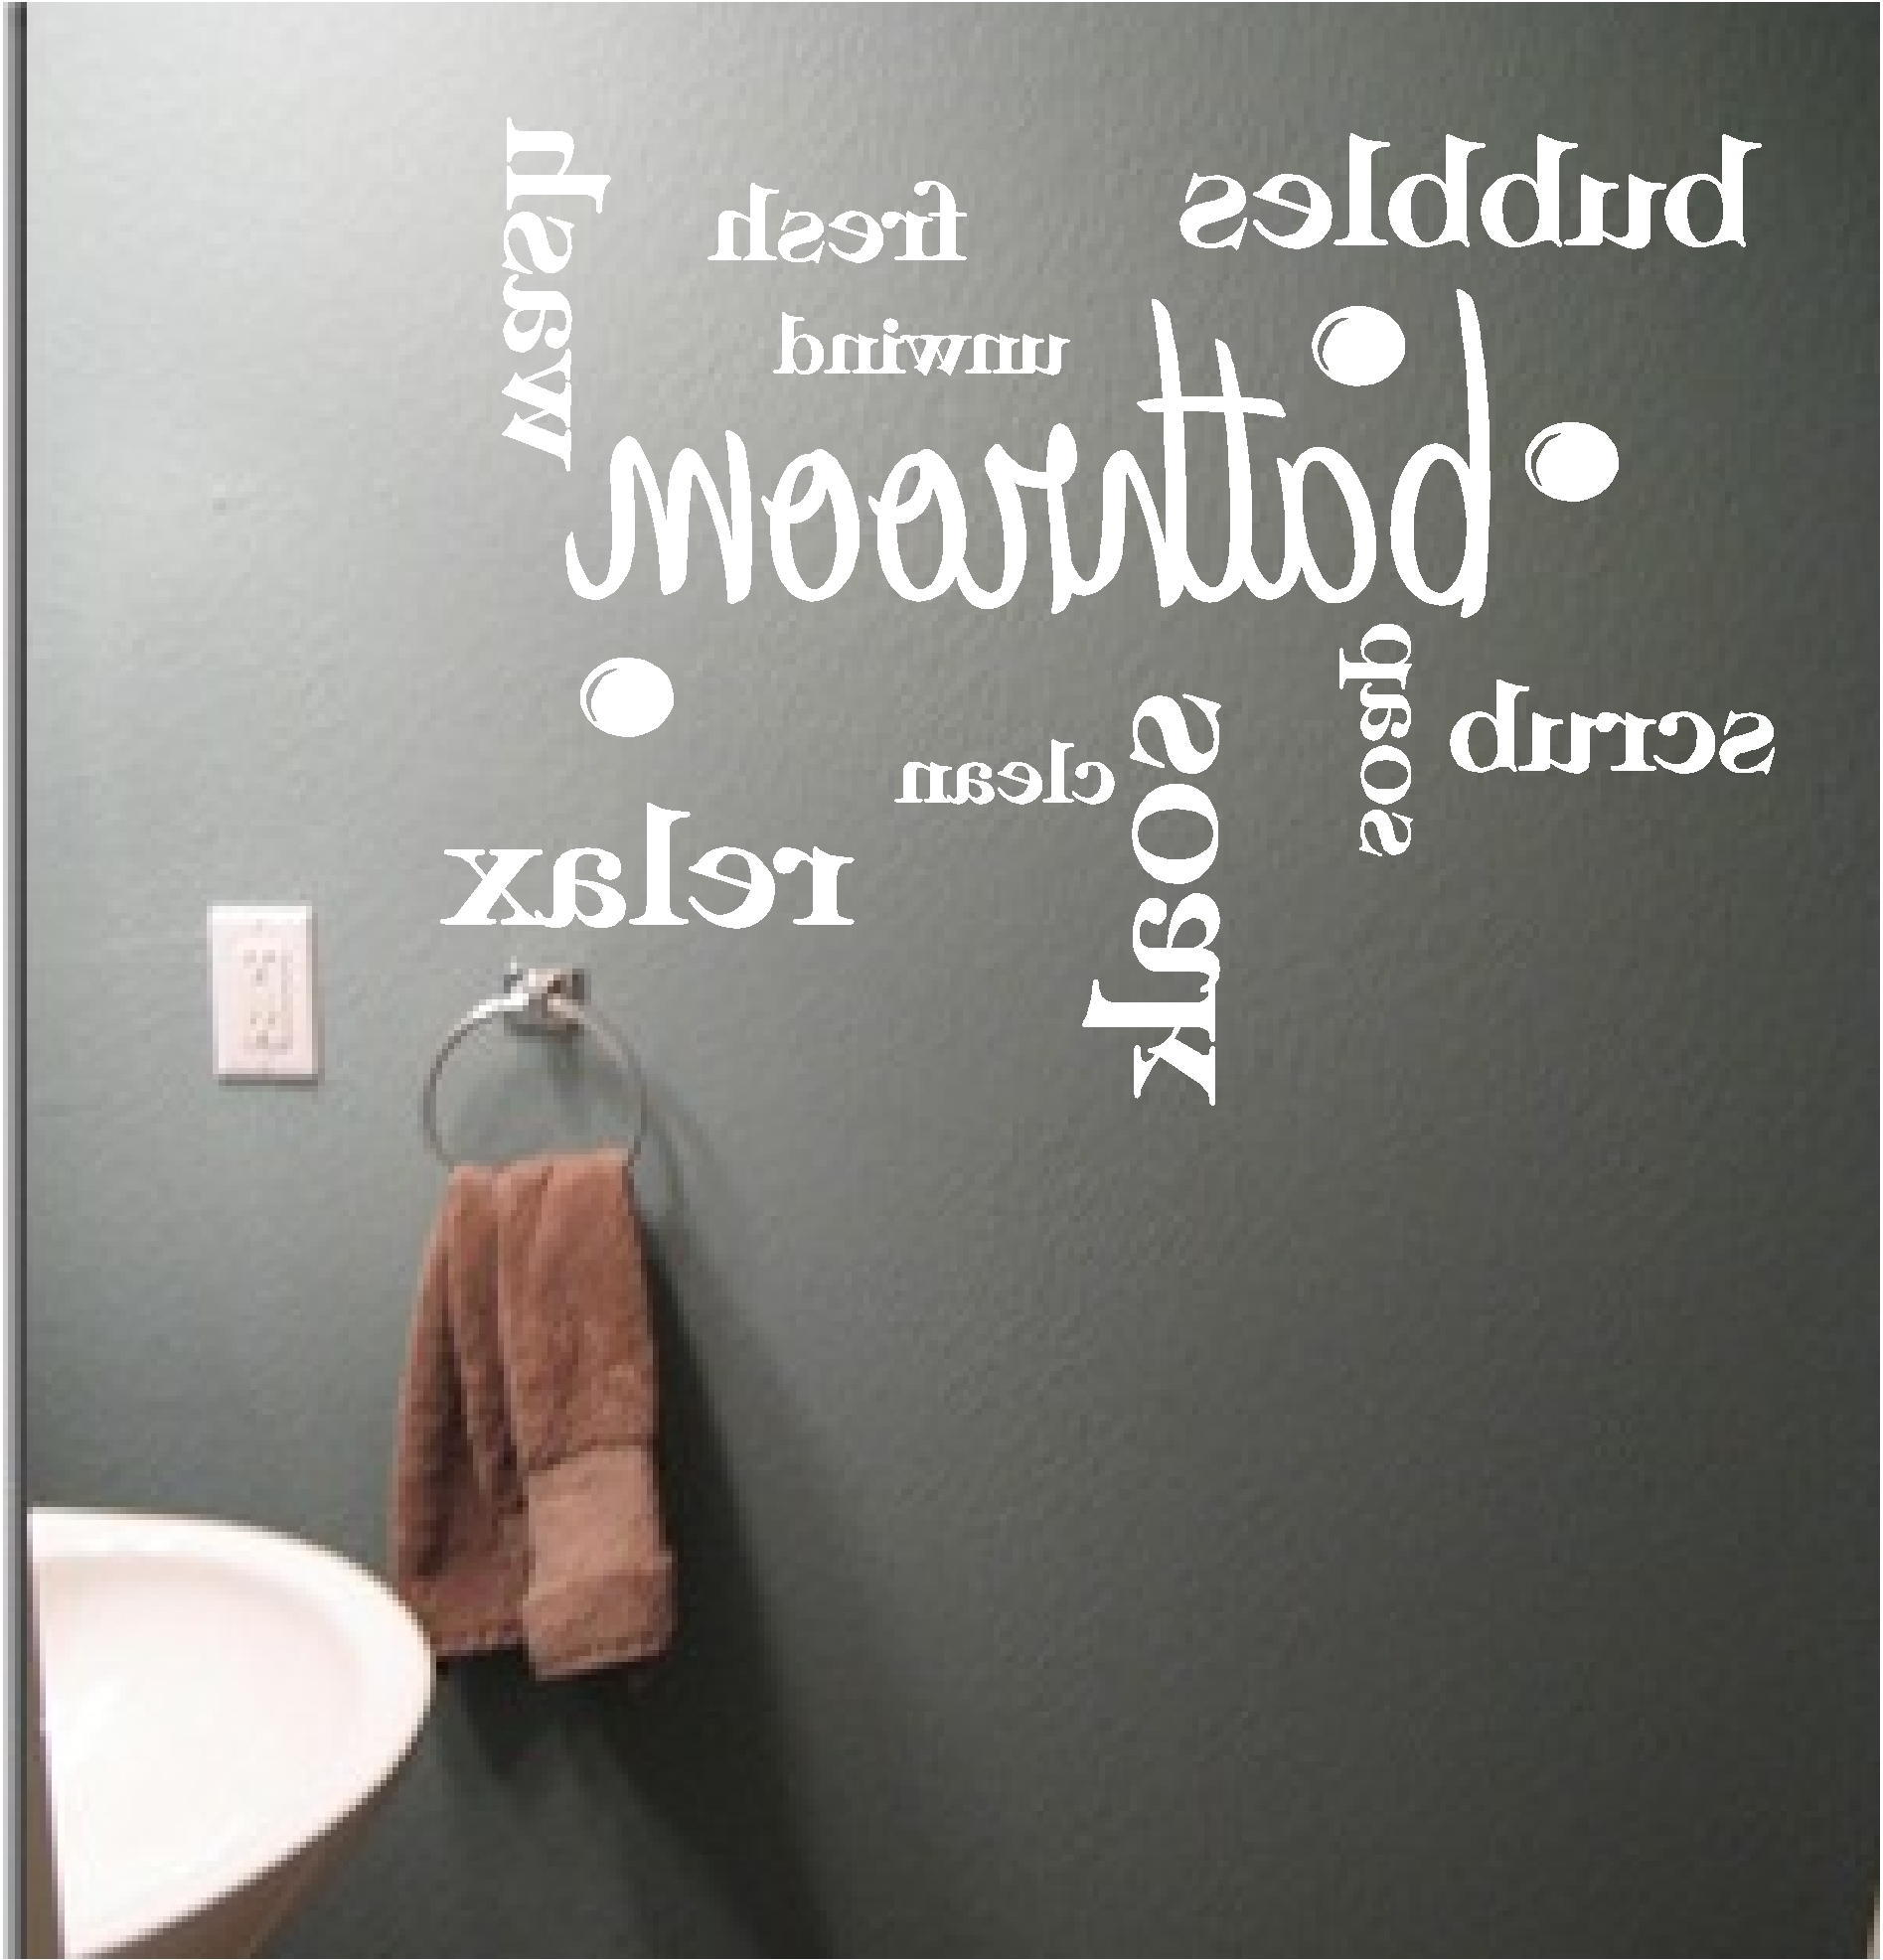 Paints : Framed Word Art For Walls Together With Wooden Word Art Throughout Popular Wooden Word Art For Walls (View 4 of 15)